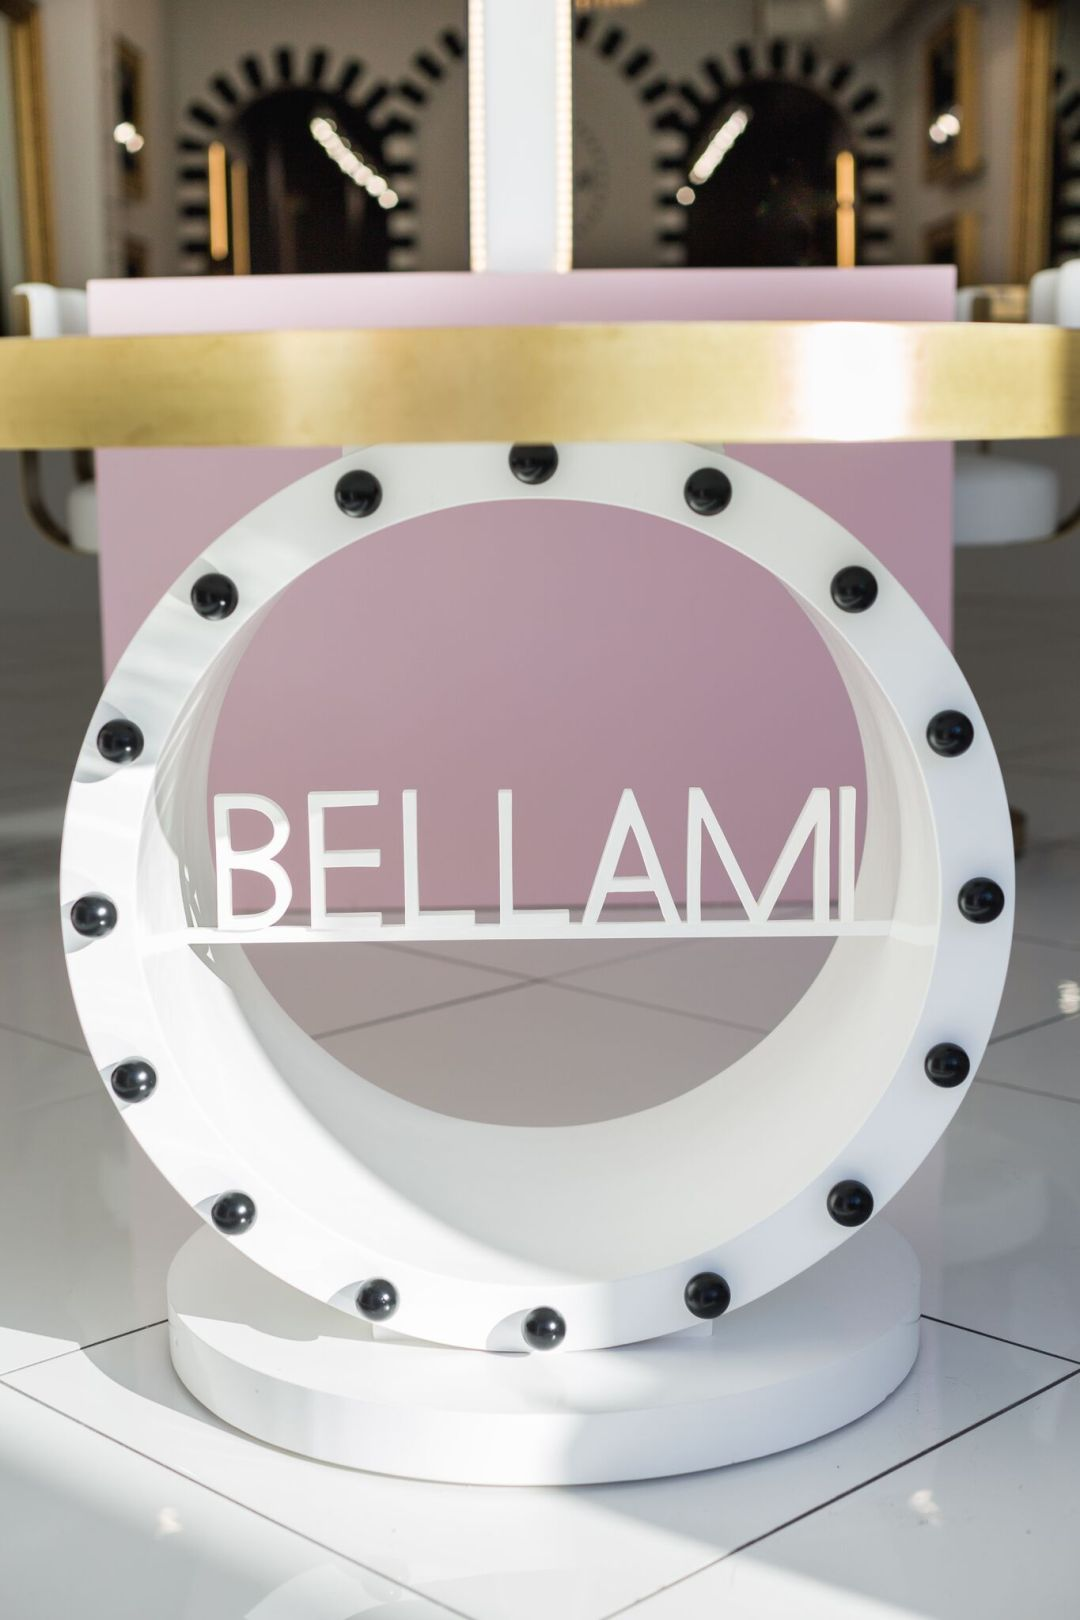 Modern Bellami table design by BE